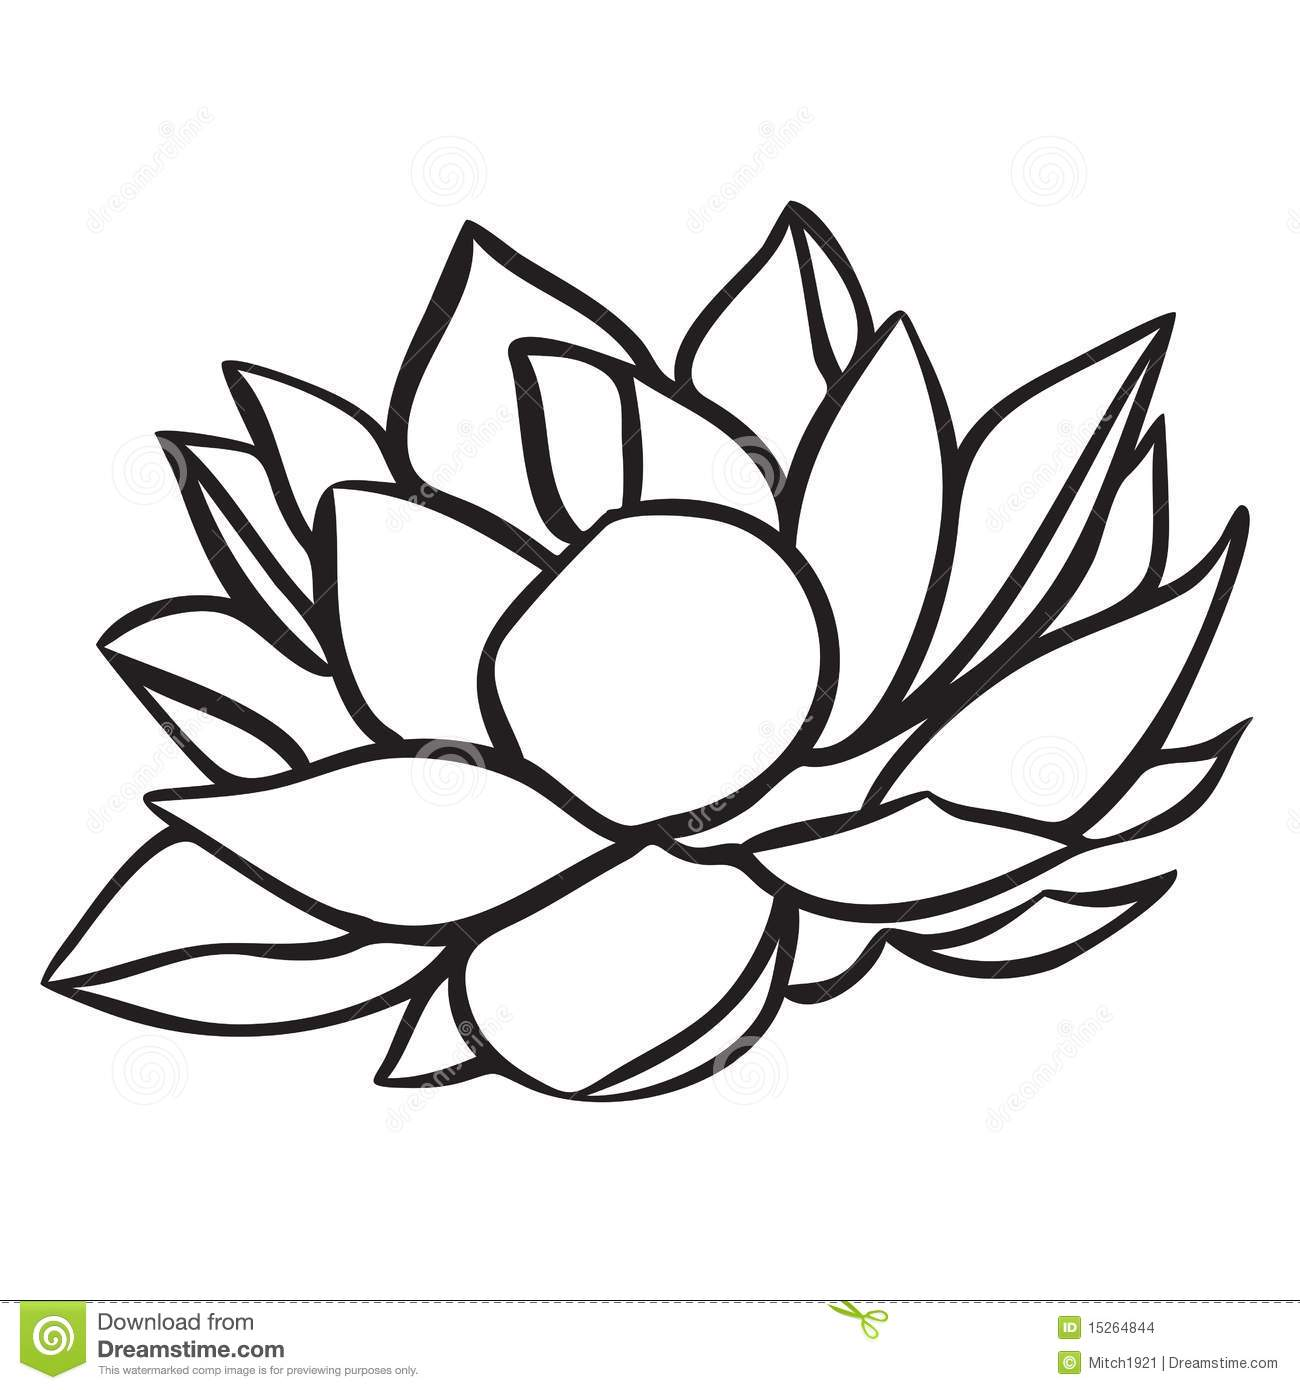 Lotus Flower Line Drawing Vector Free Download : Lotus stock vector illustration of stroke